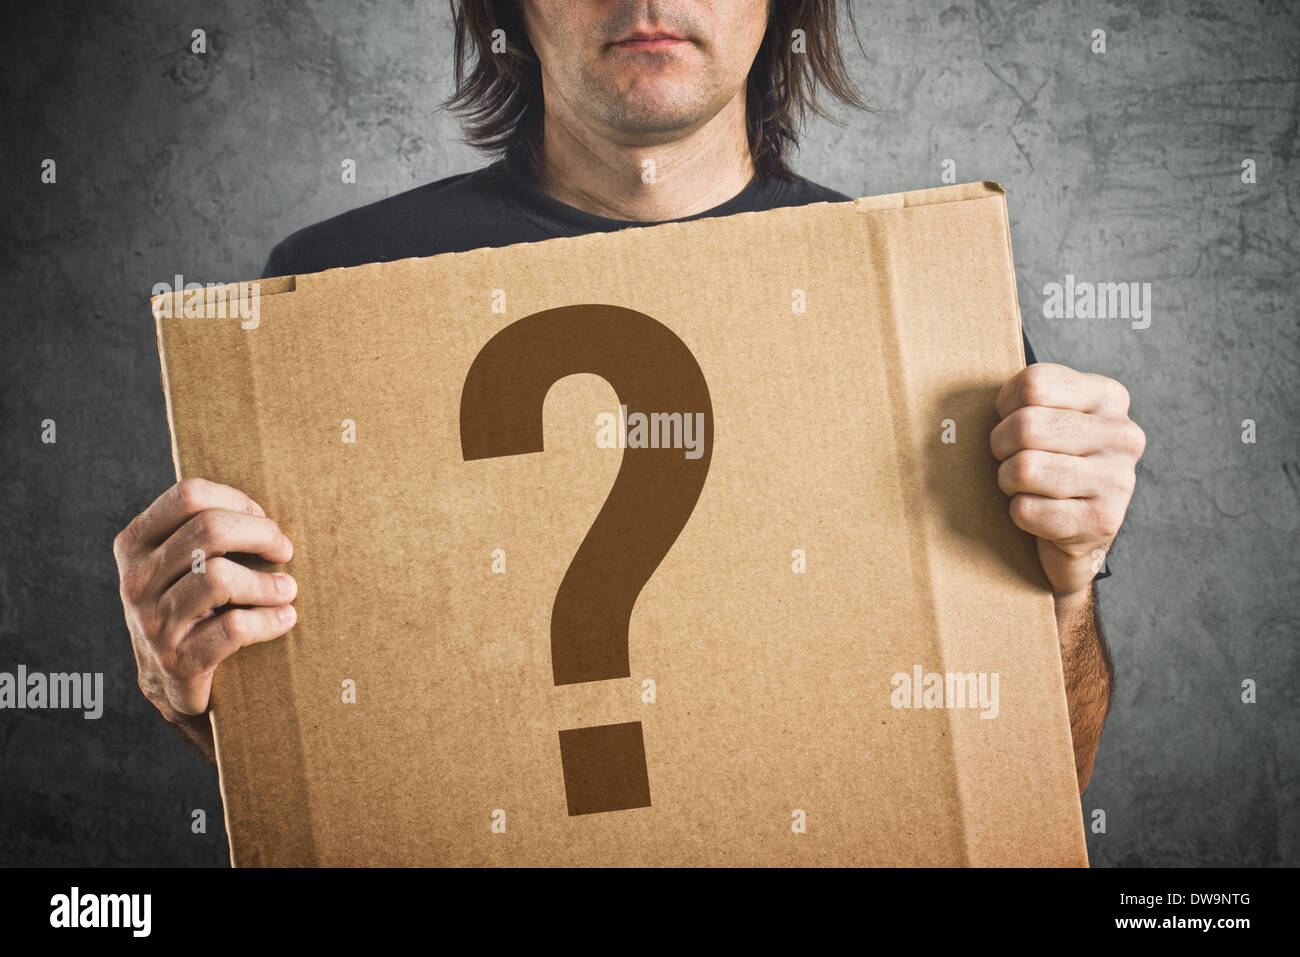 Man holding cardboard poster with question mark printed on. - Stock Image